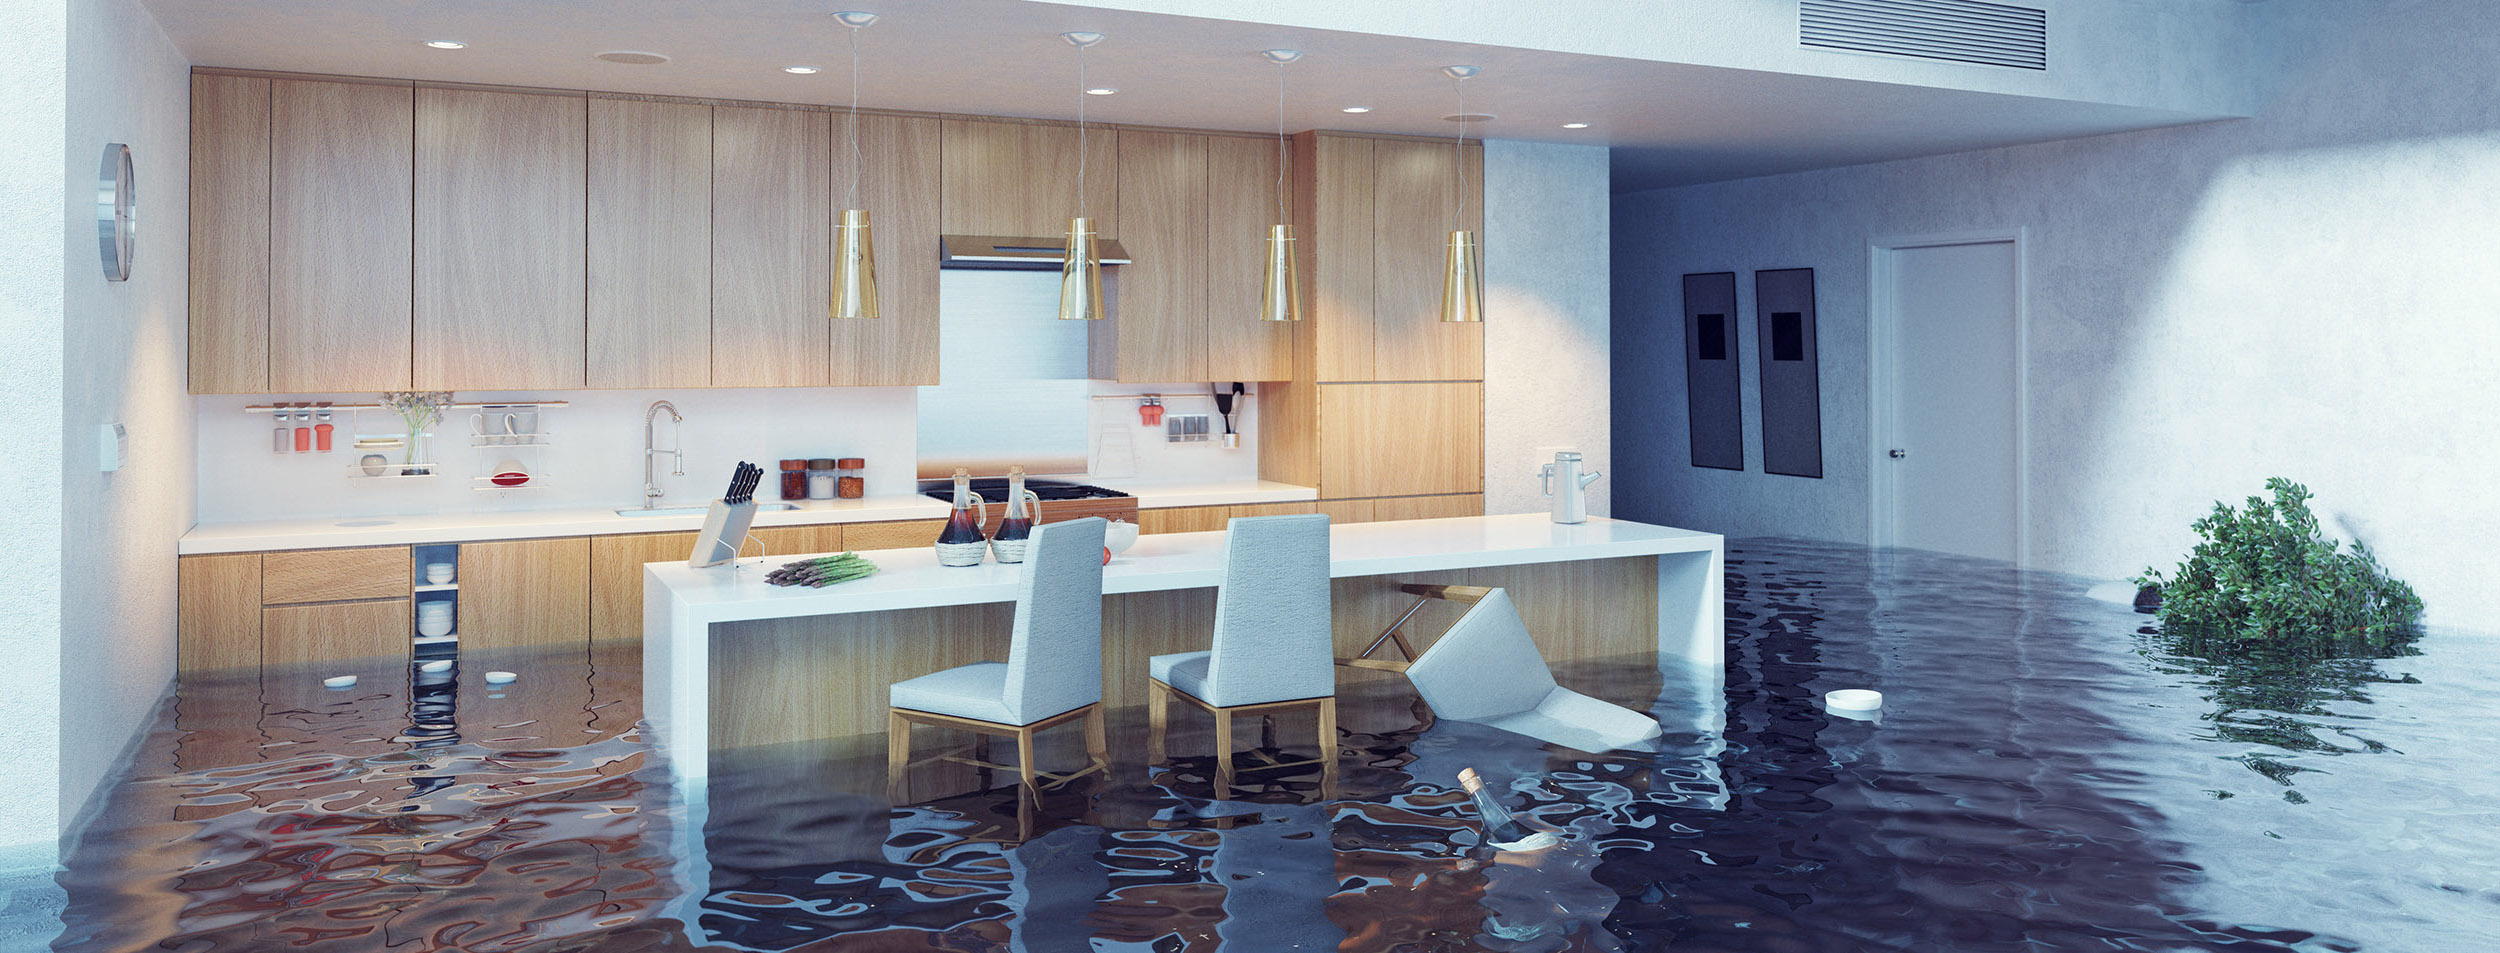 Flooded Kitchen